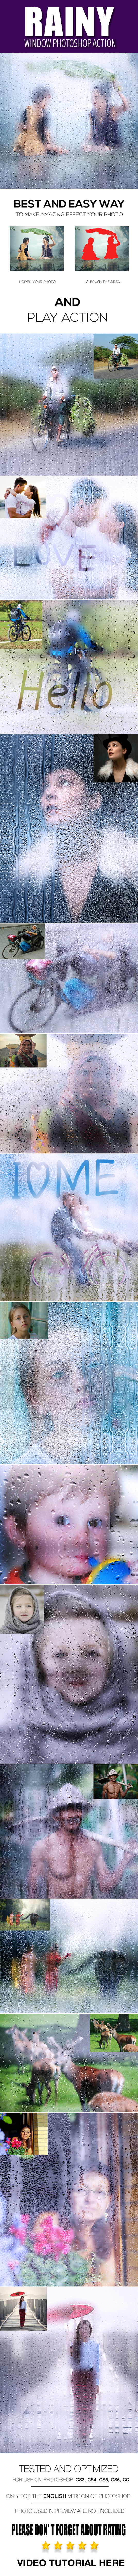 Rainy Window Photoshop Action - Photo Effects Actions